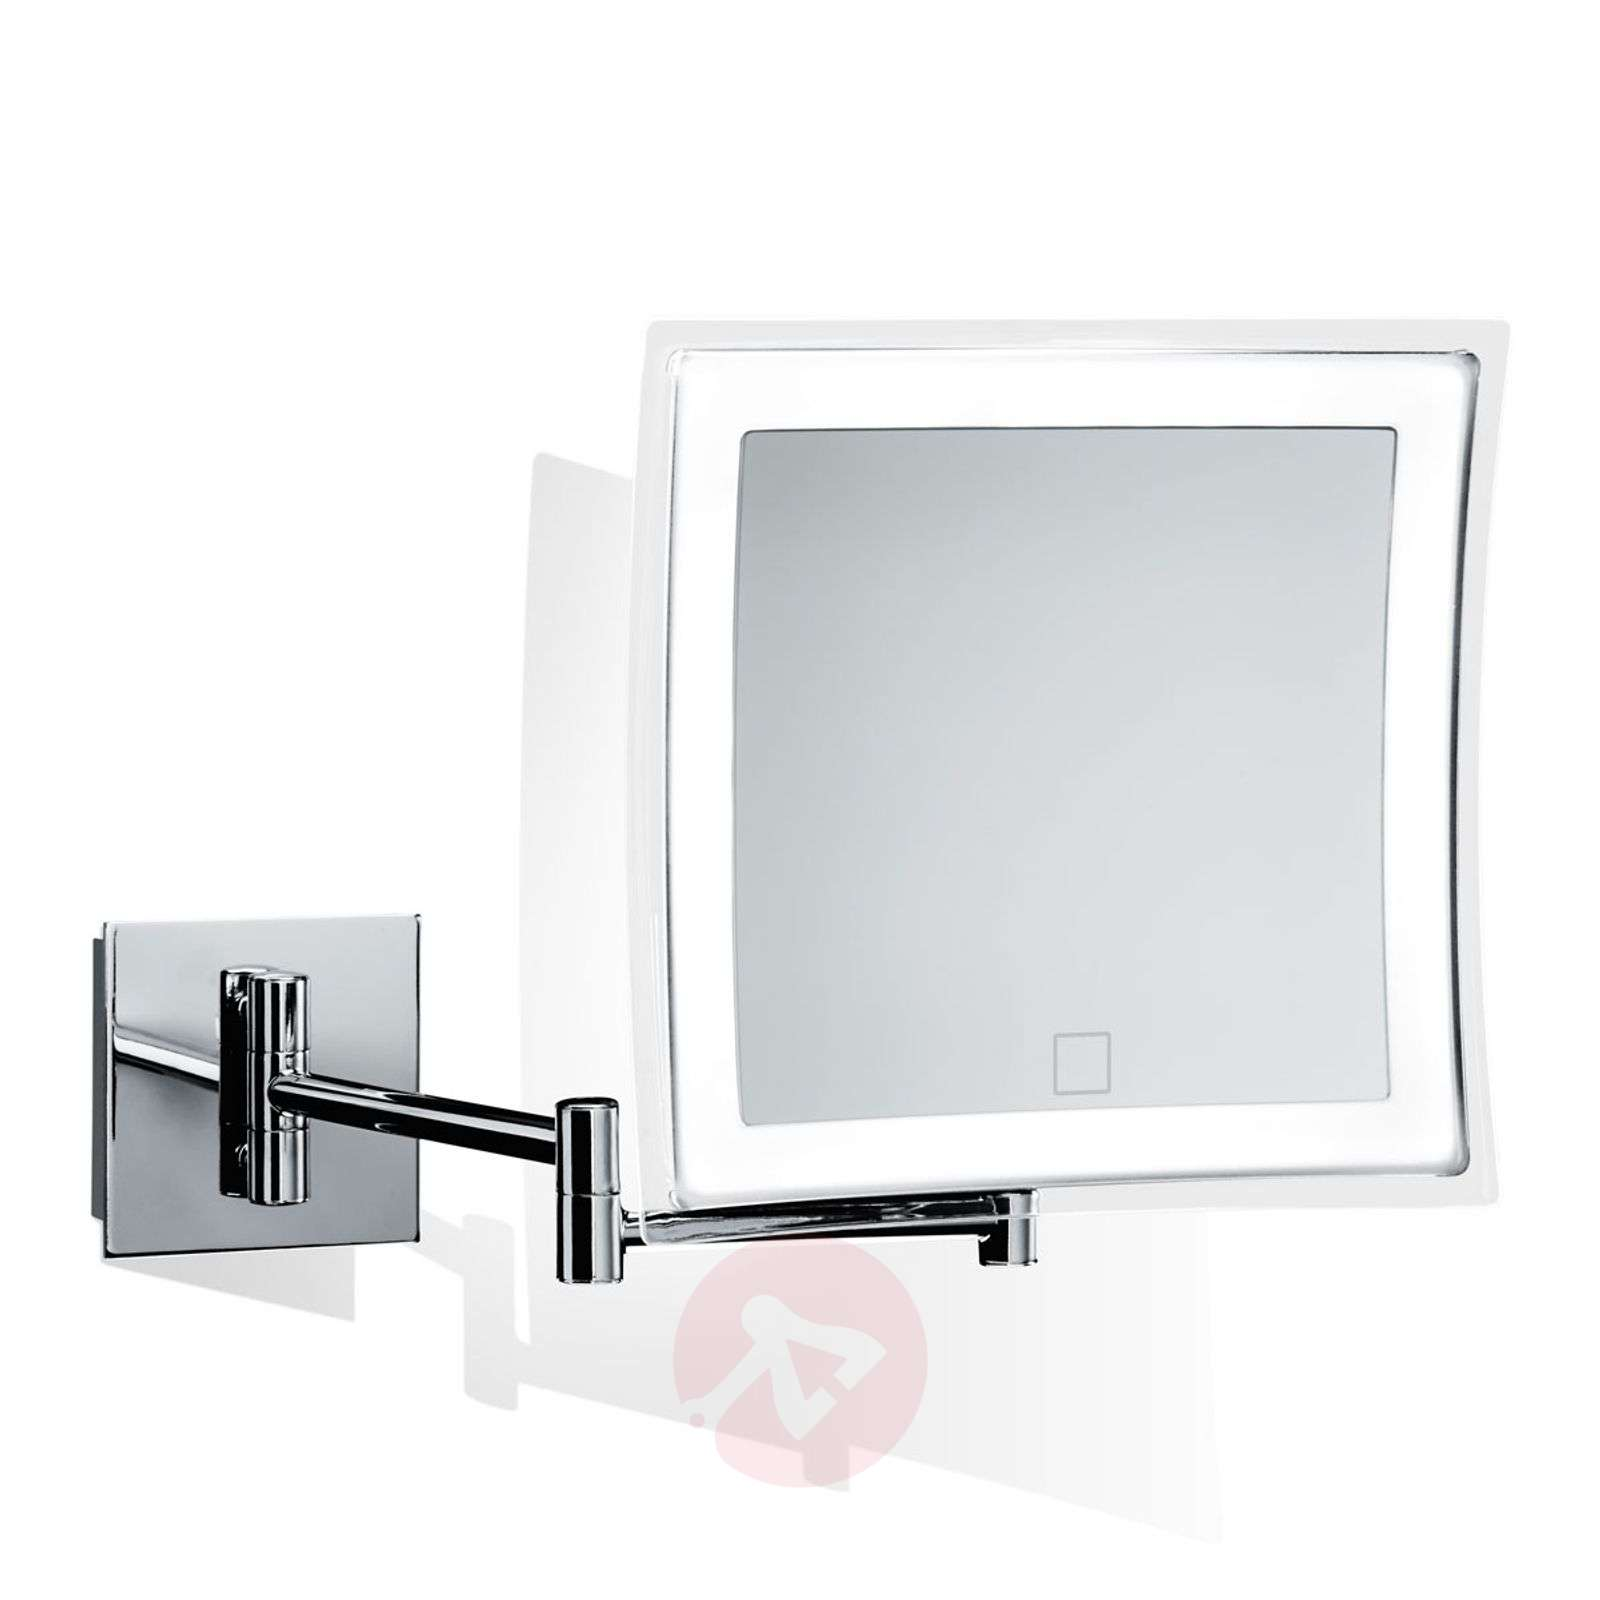 Decor Walther BS 85 Touch LED wall mirror square-2504973-01